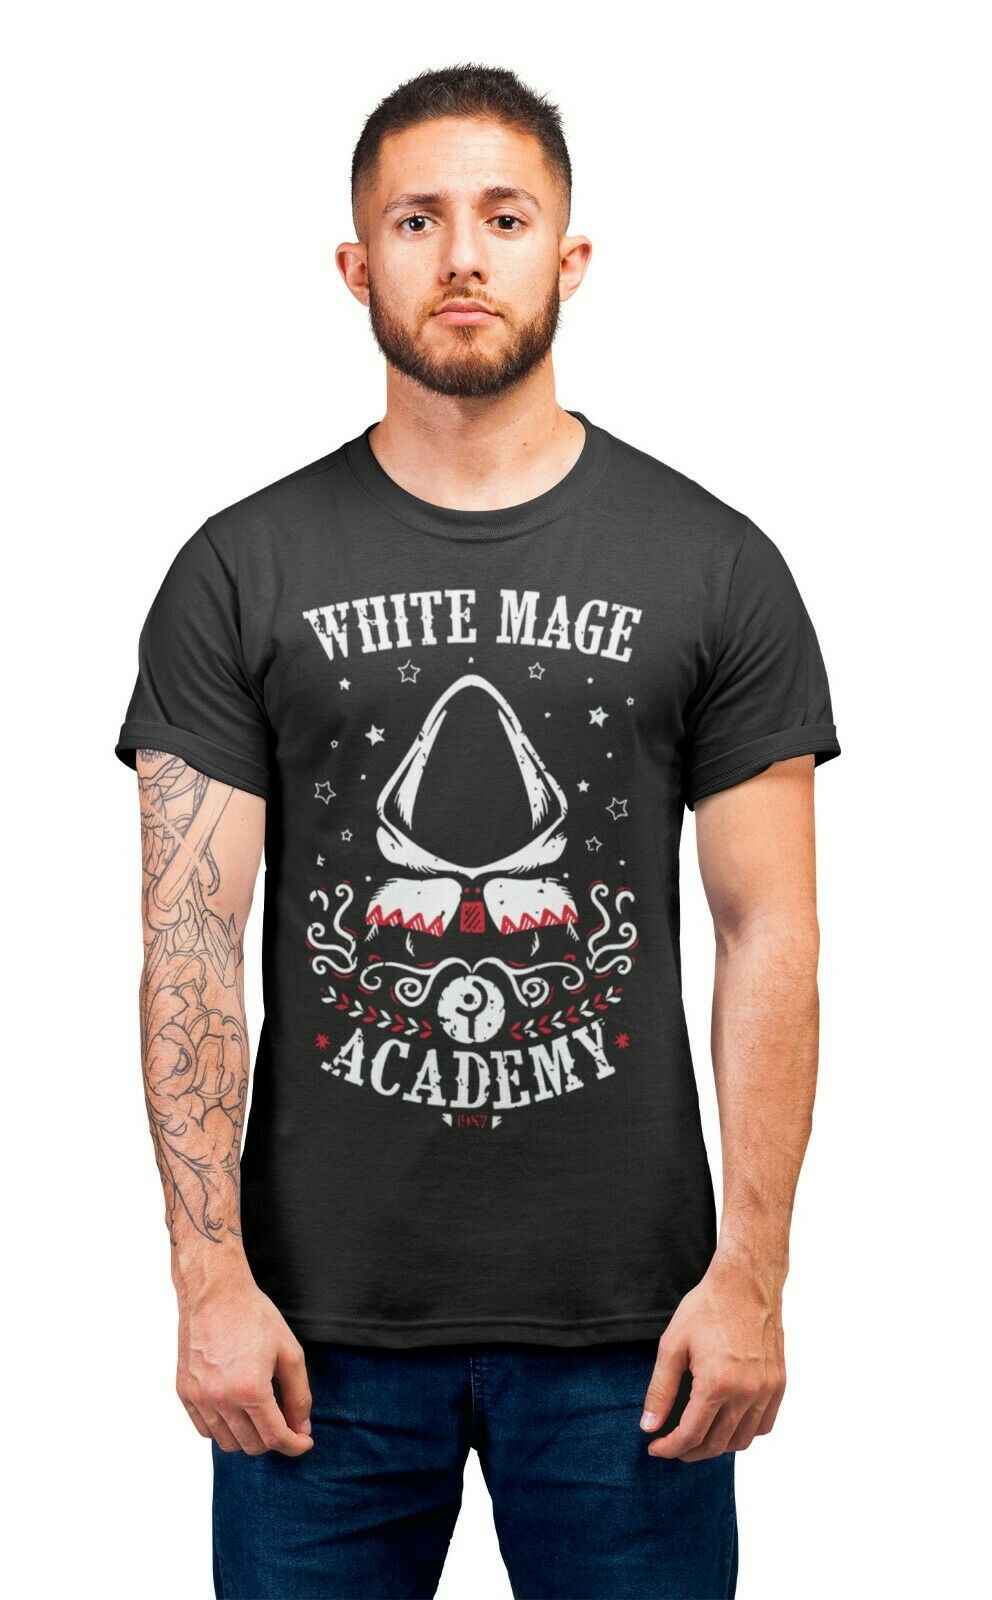 White Mage Academy Final Fantasy RPG D&D Gaming T-Shirt Adults Unisex T-ShirtsMen Adult T Shirt Short Sleeve Cotton image